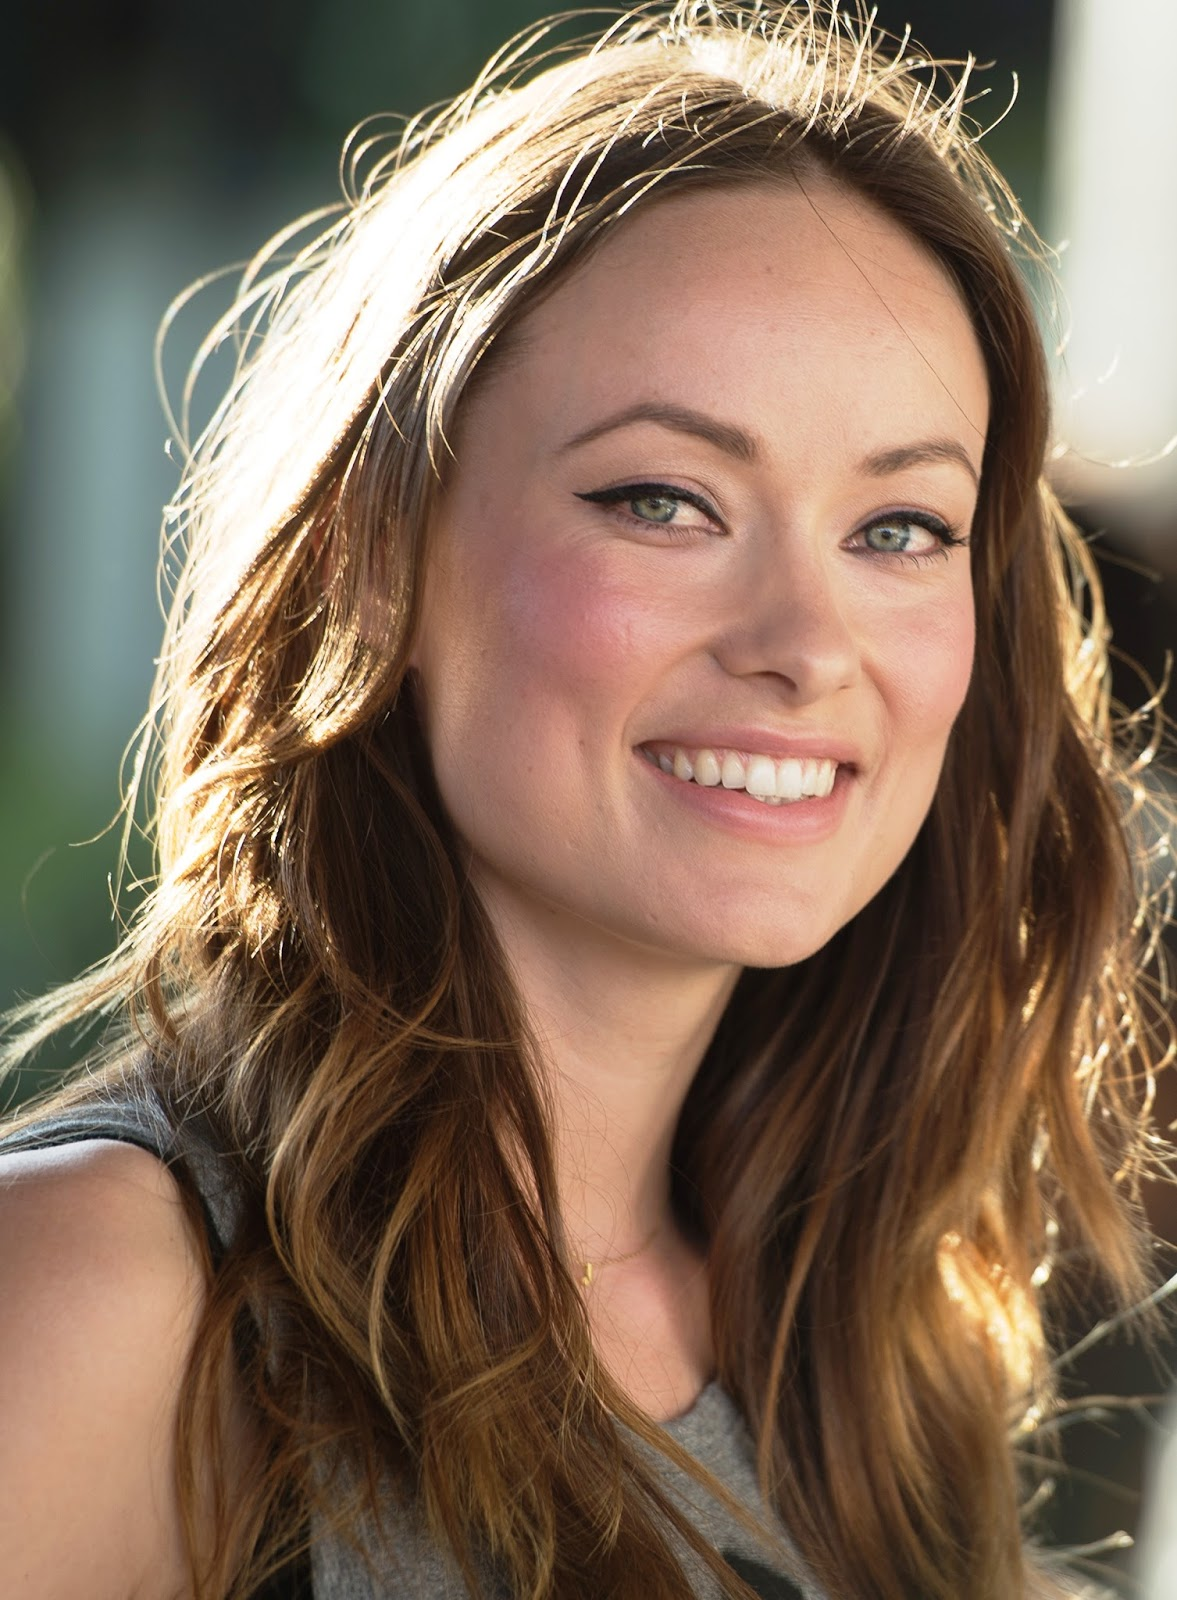 Celebrity Biography and photos: Olivia Wilde